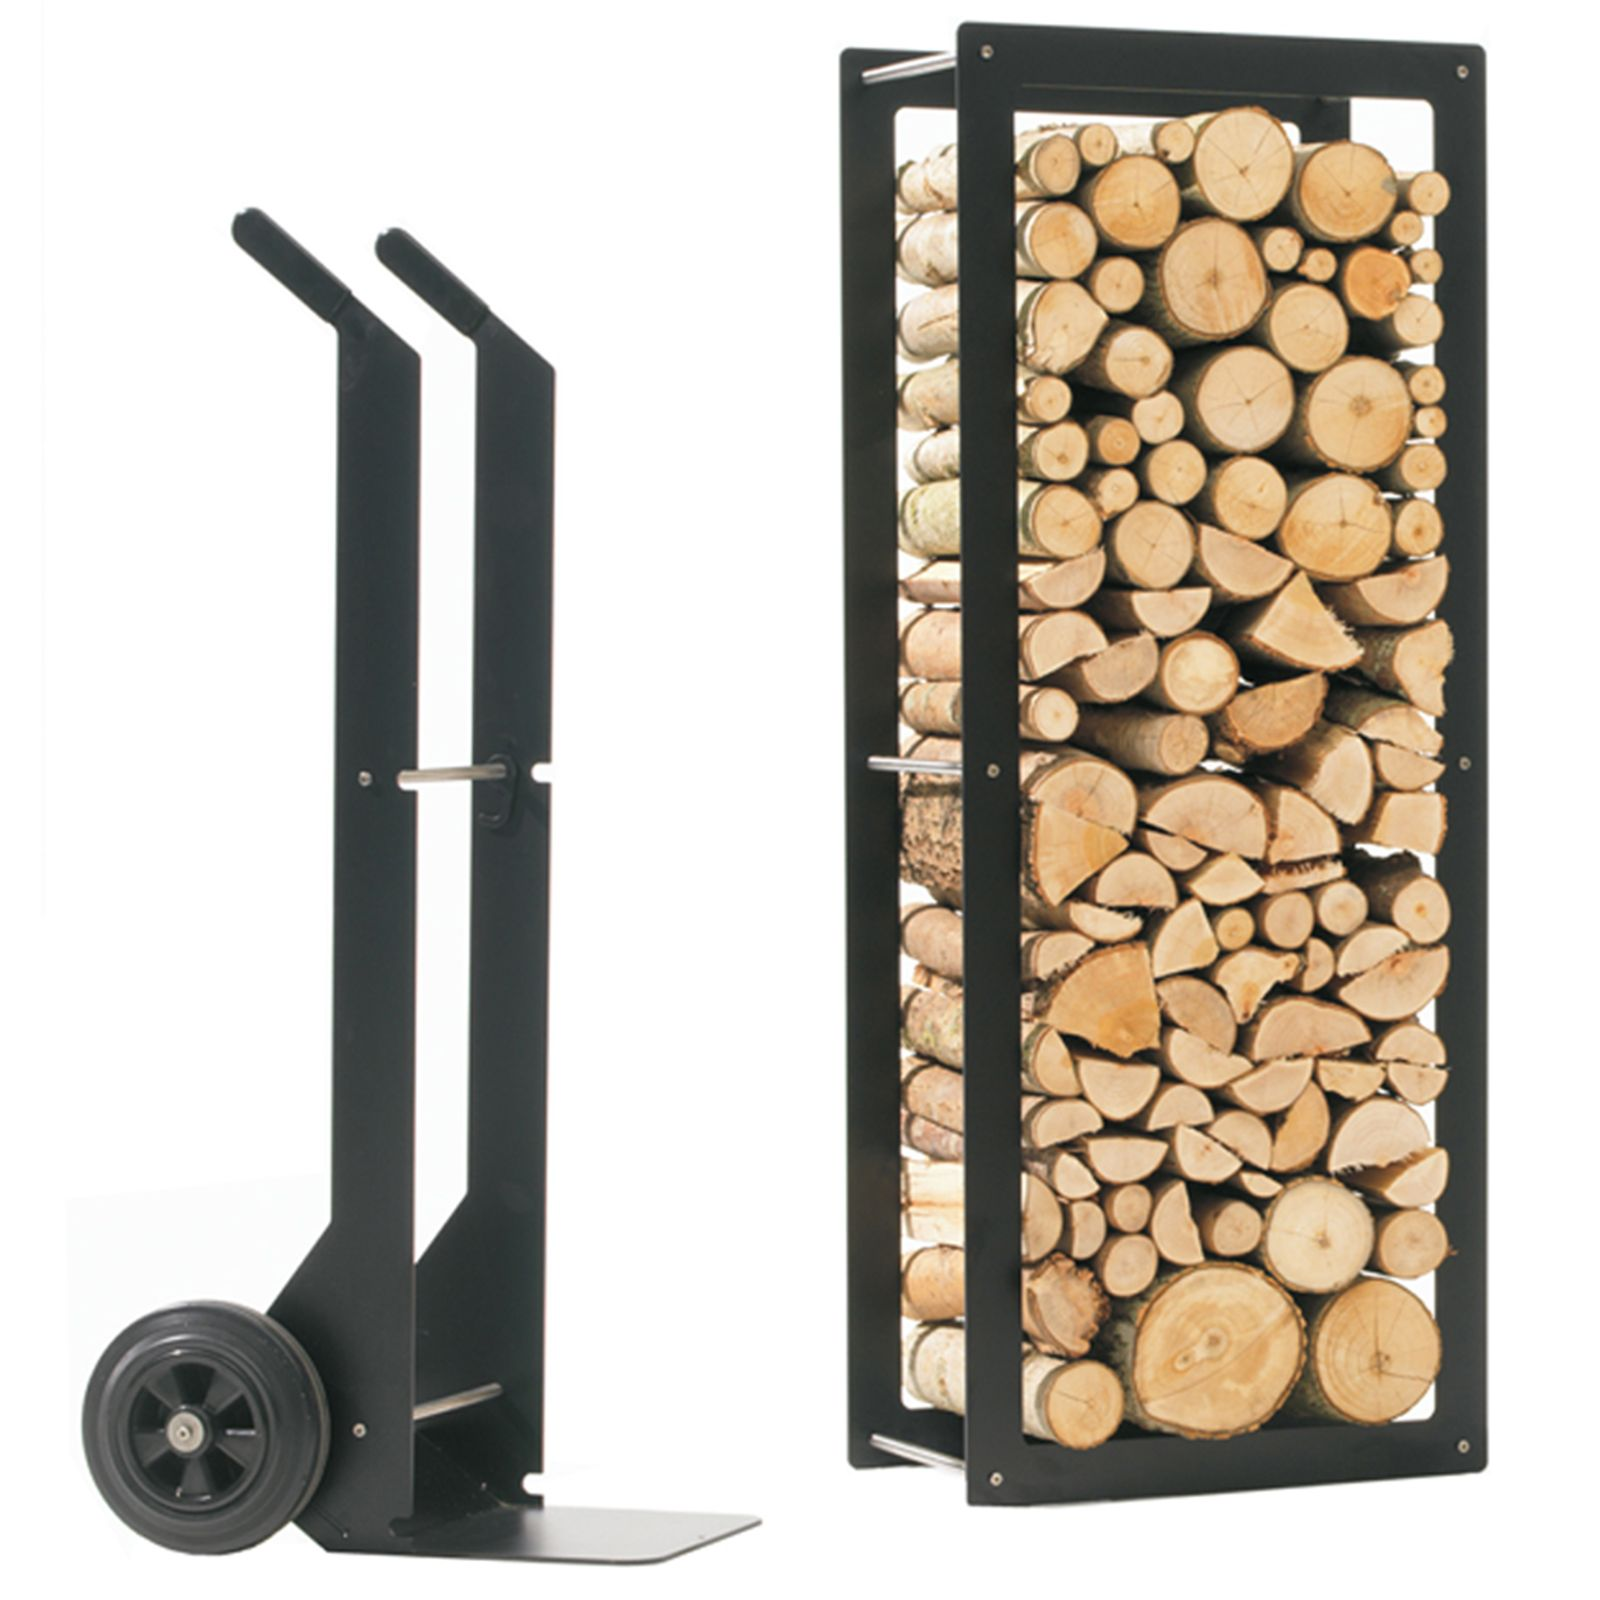 Woodstock Firewood Rack Indoor For The Home